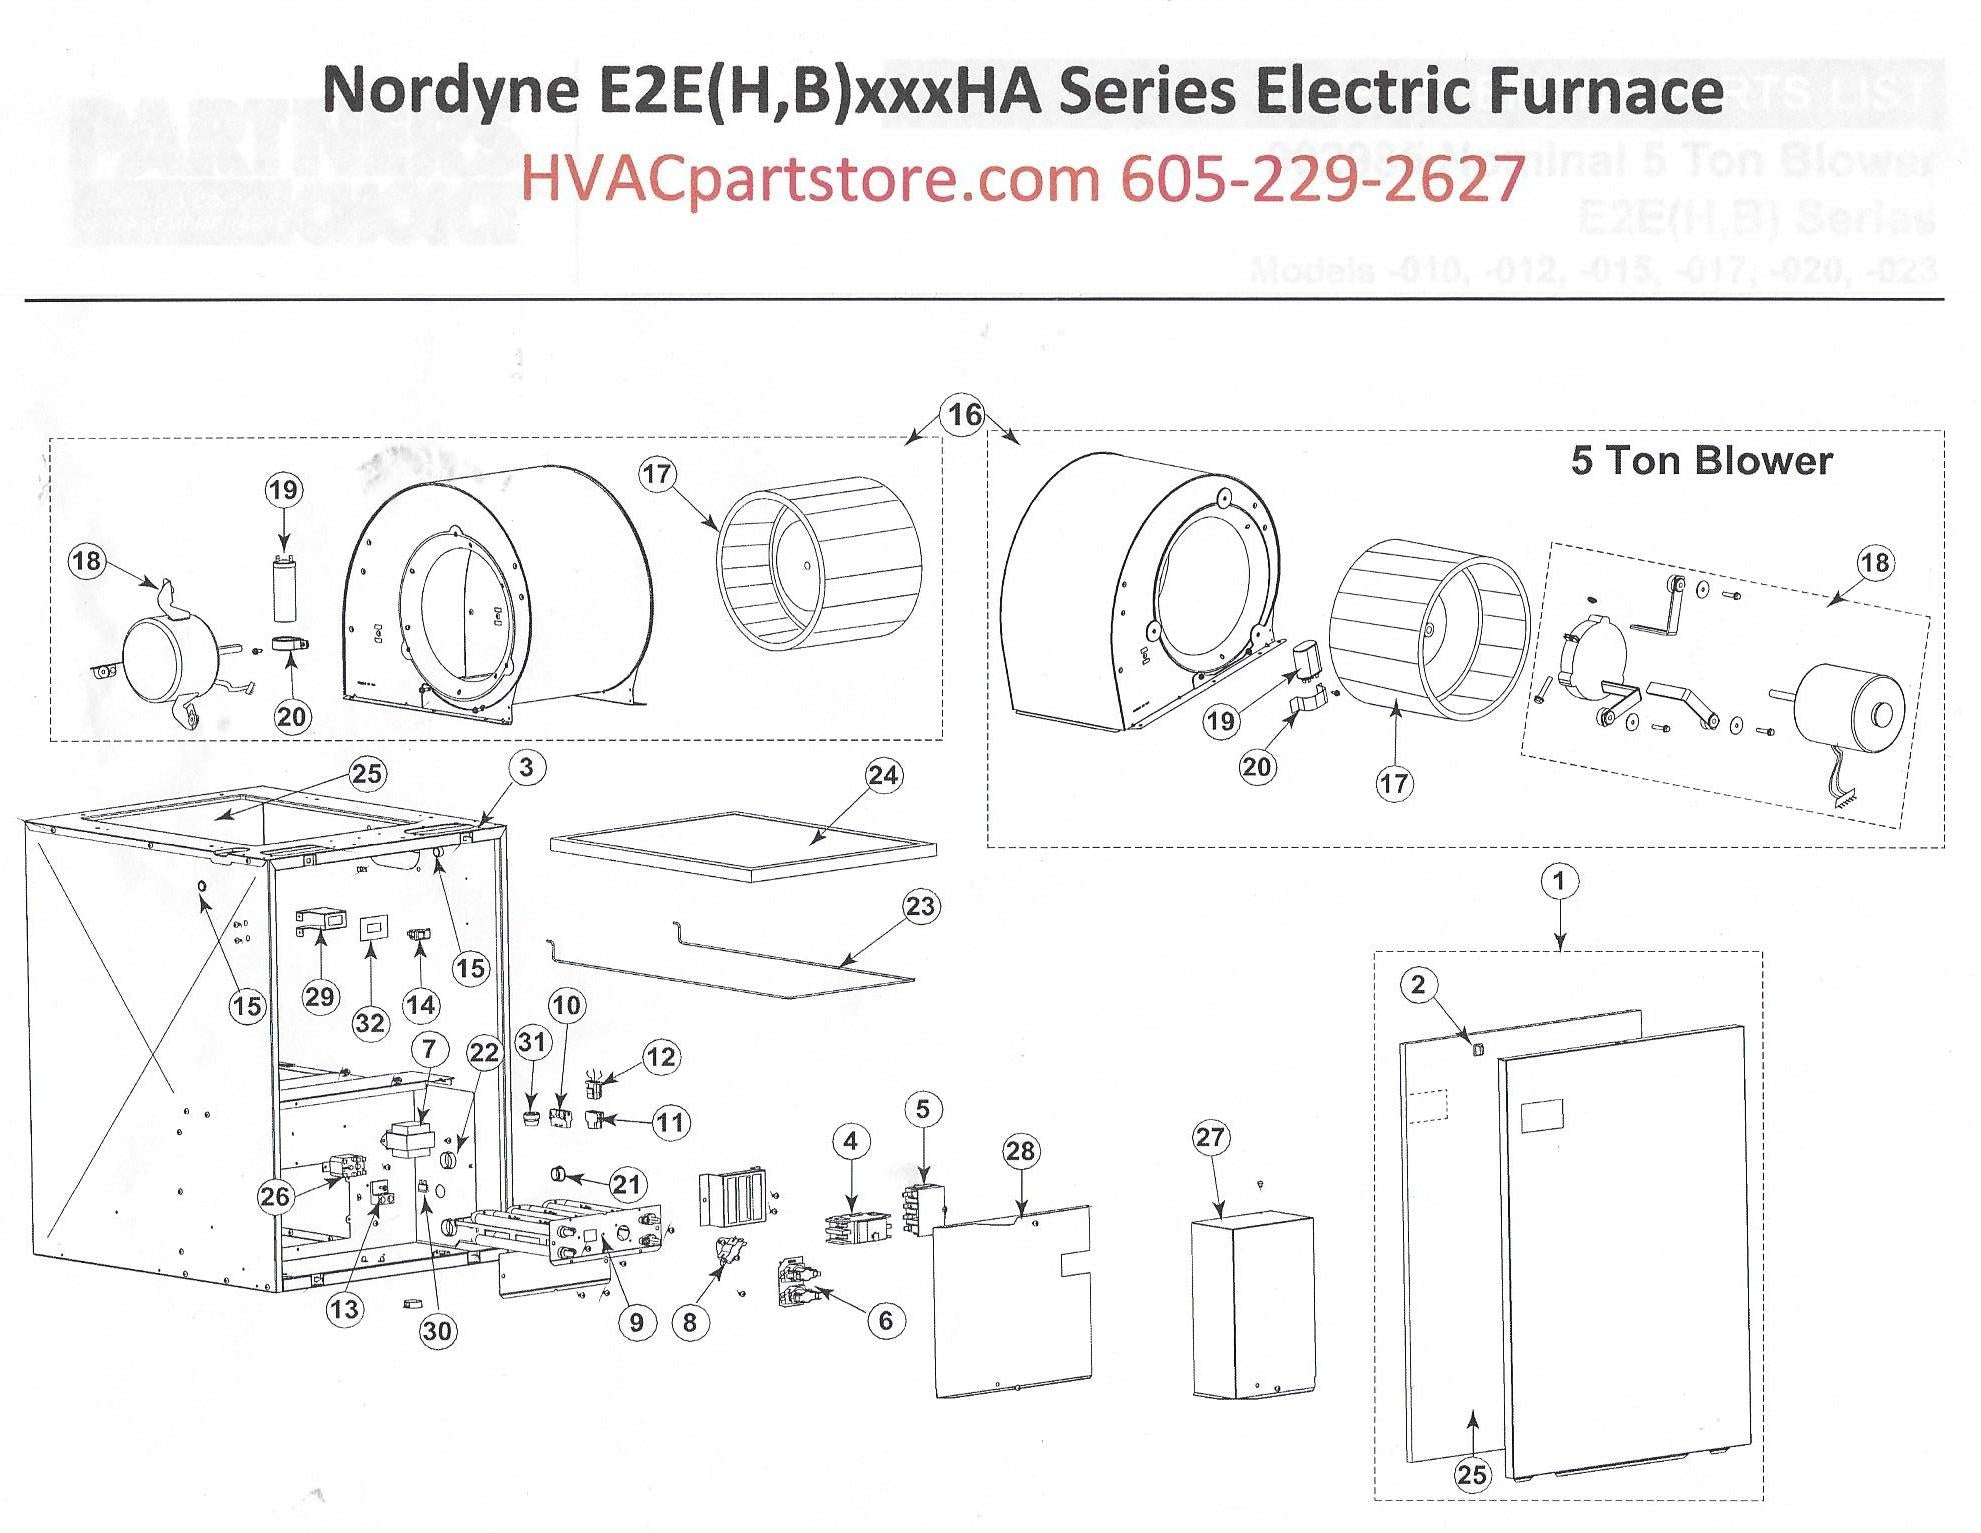 E2HADiagram_b4400f5e fcd1 43cd a422 4ef2ce8cde99?6326583503626438513 e2eb017ha nordyne electric furnace parts hvacpartstore Wiring Diagram for Miller Electric Furnace at aneh.co